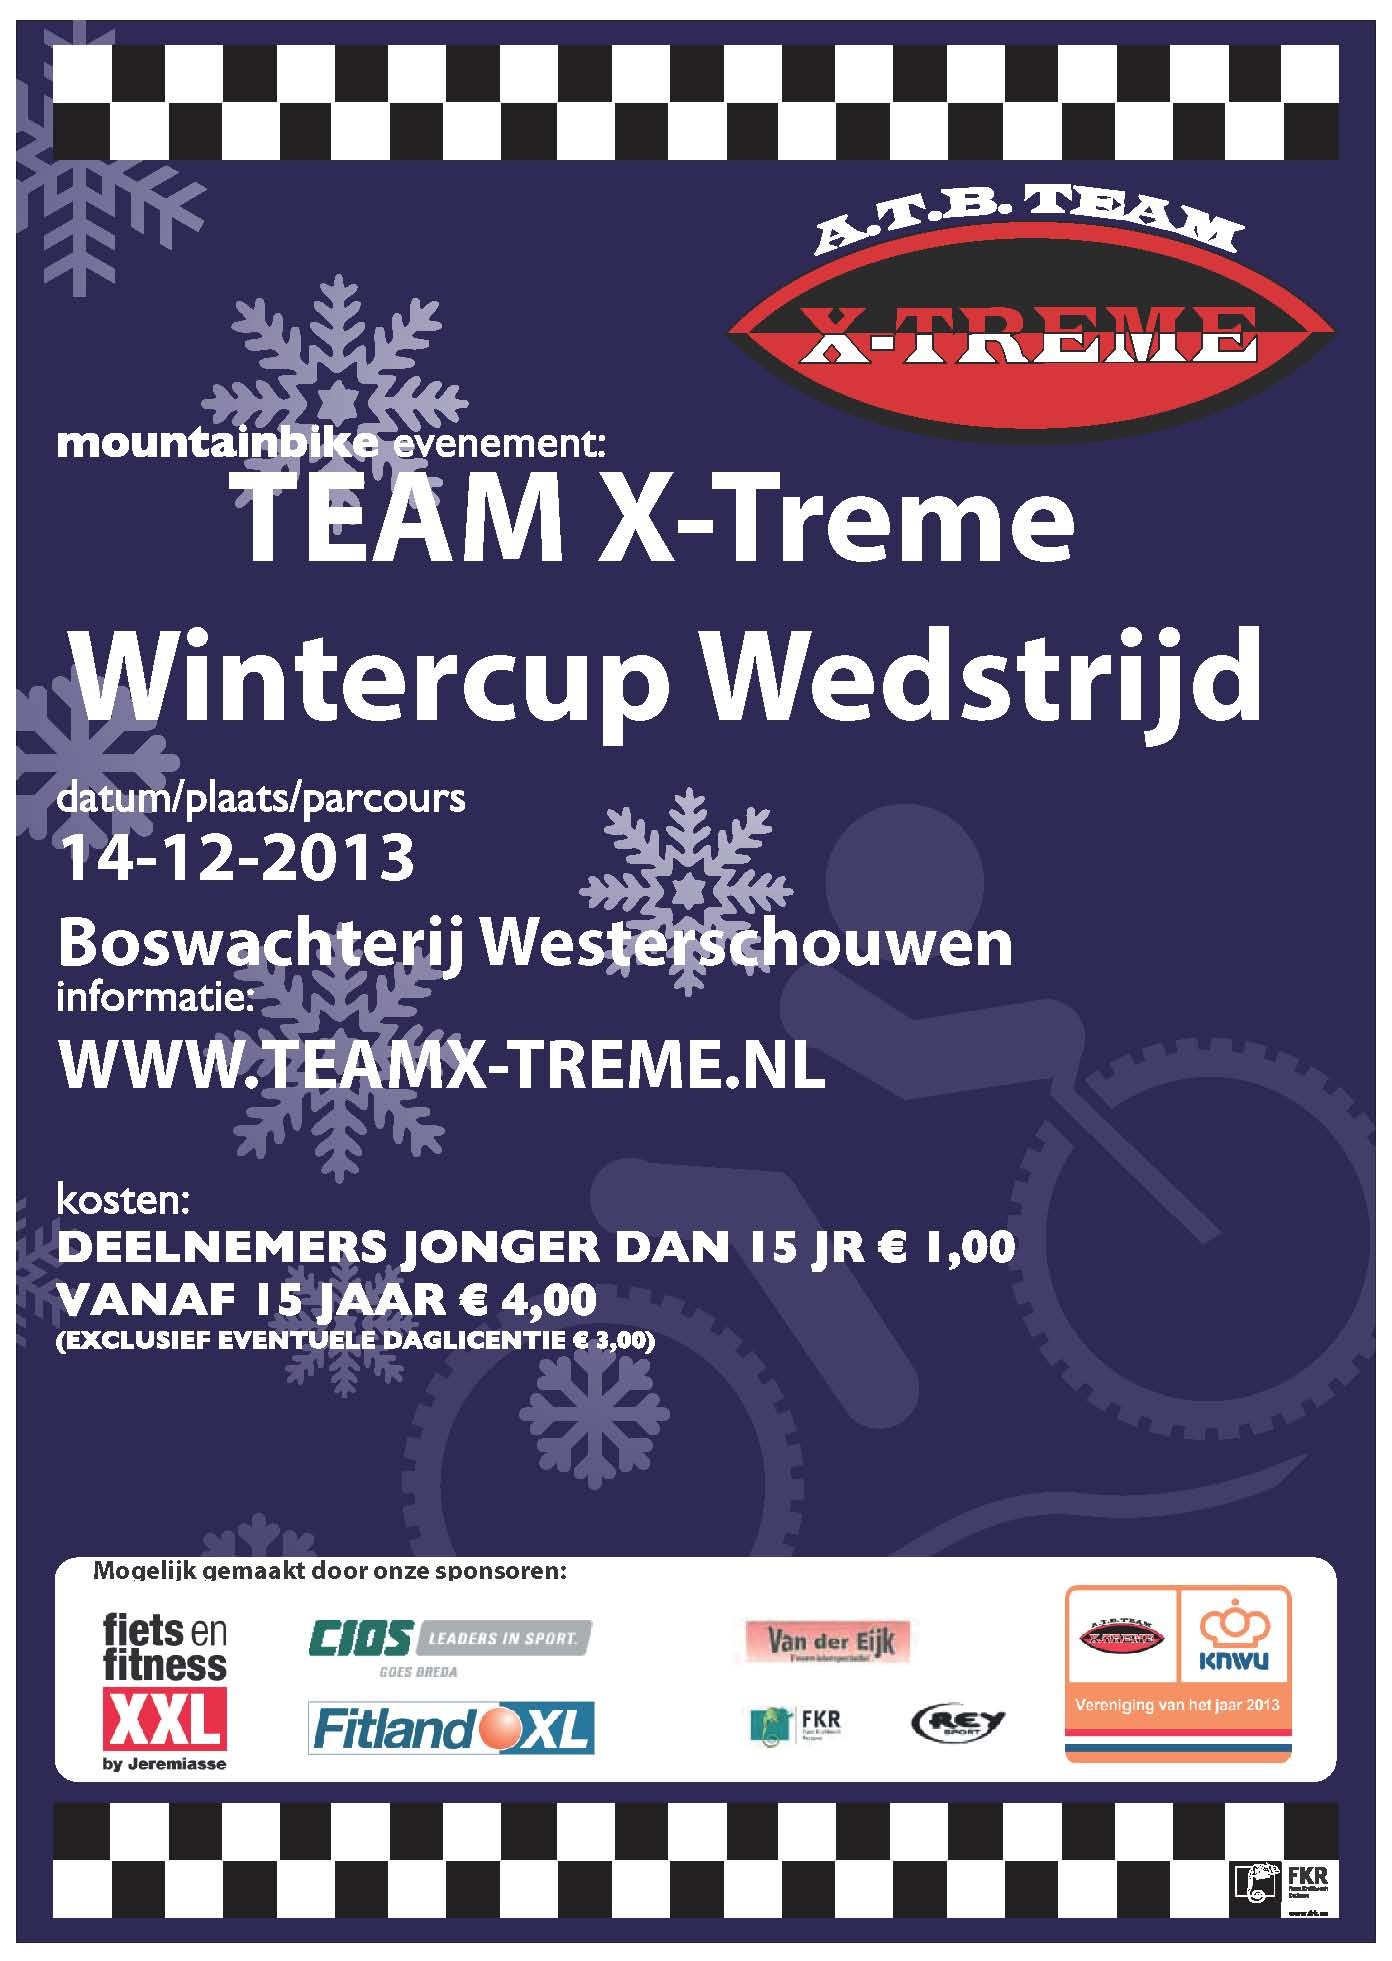 20131212-1 Affiche Zeeuwse ATB wintercompetitie Burgh-Haamstede 2013-2014 concept